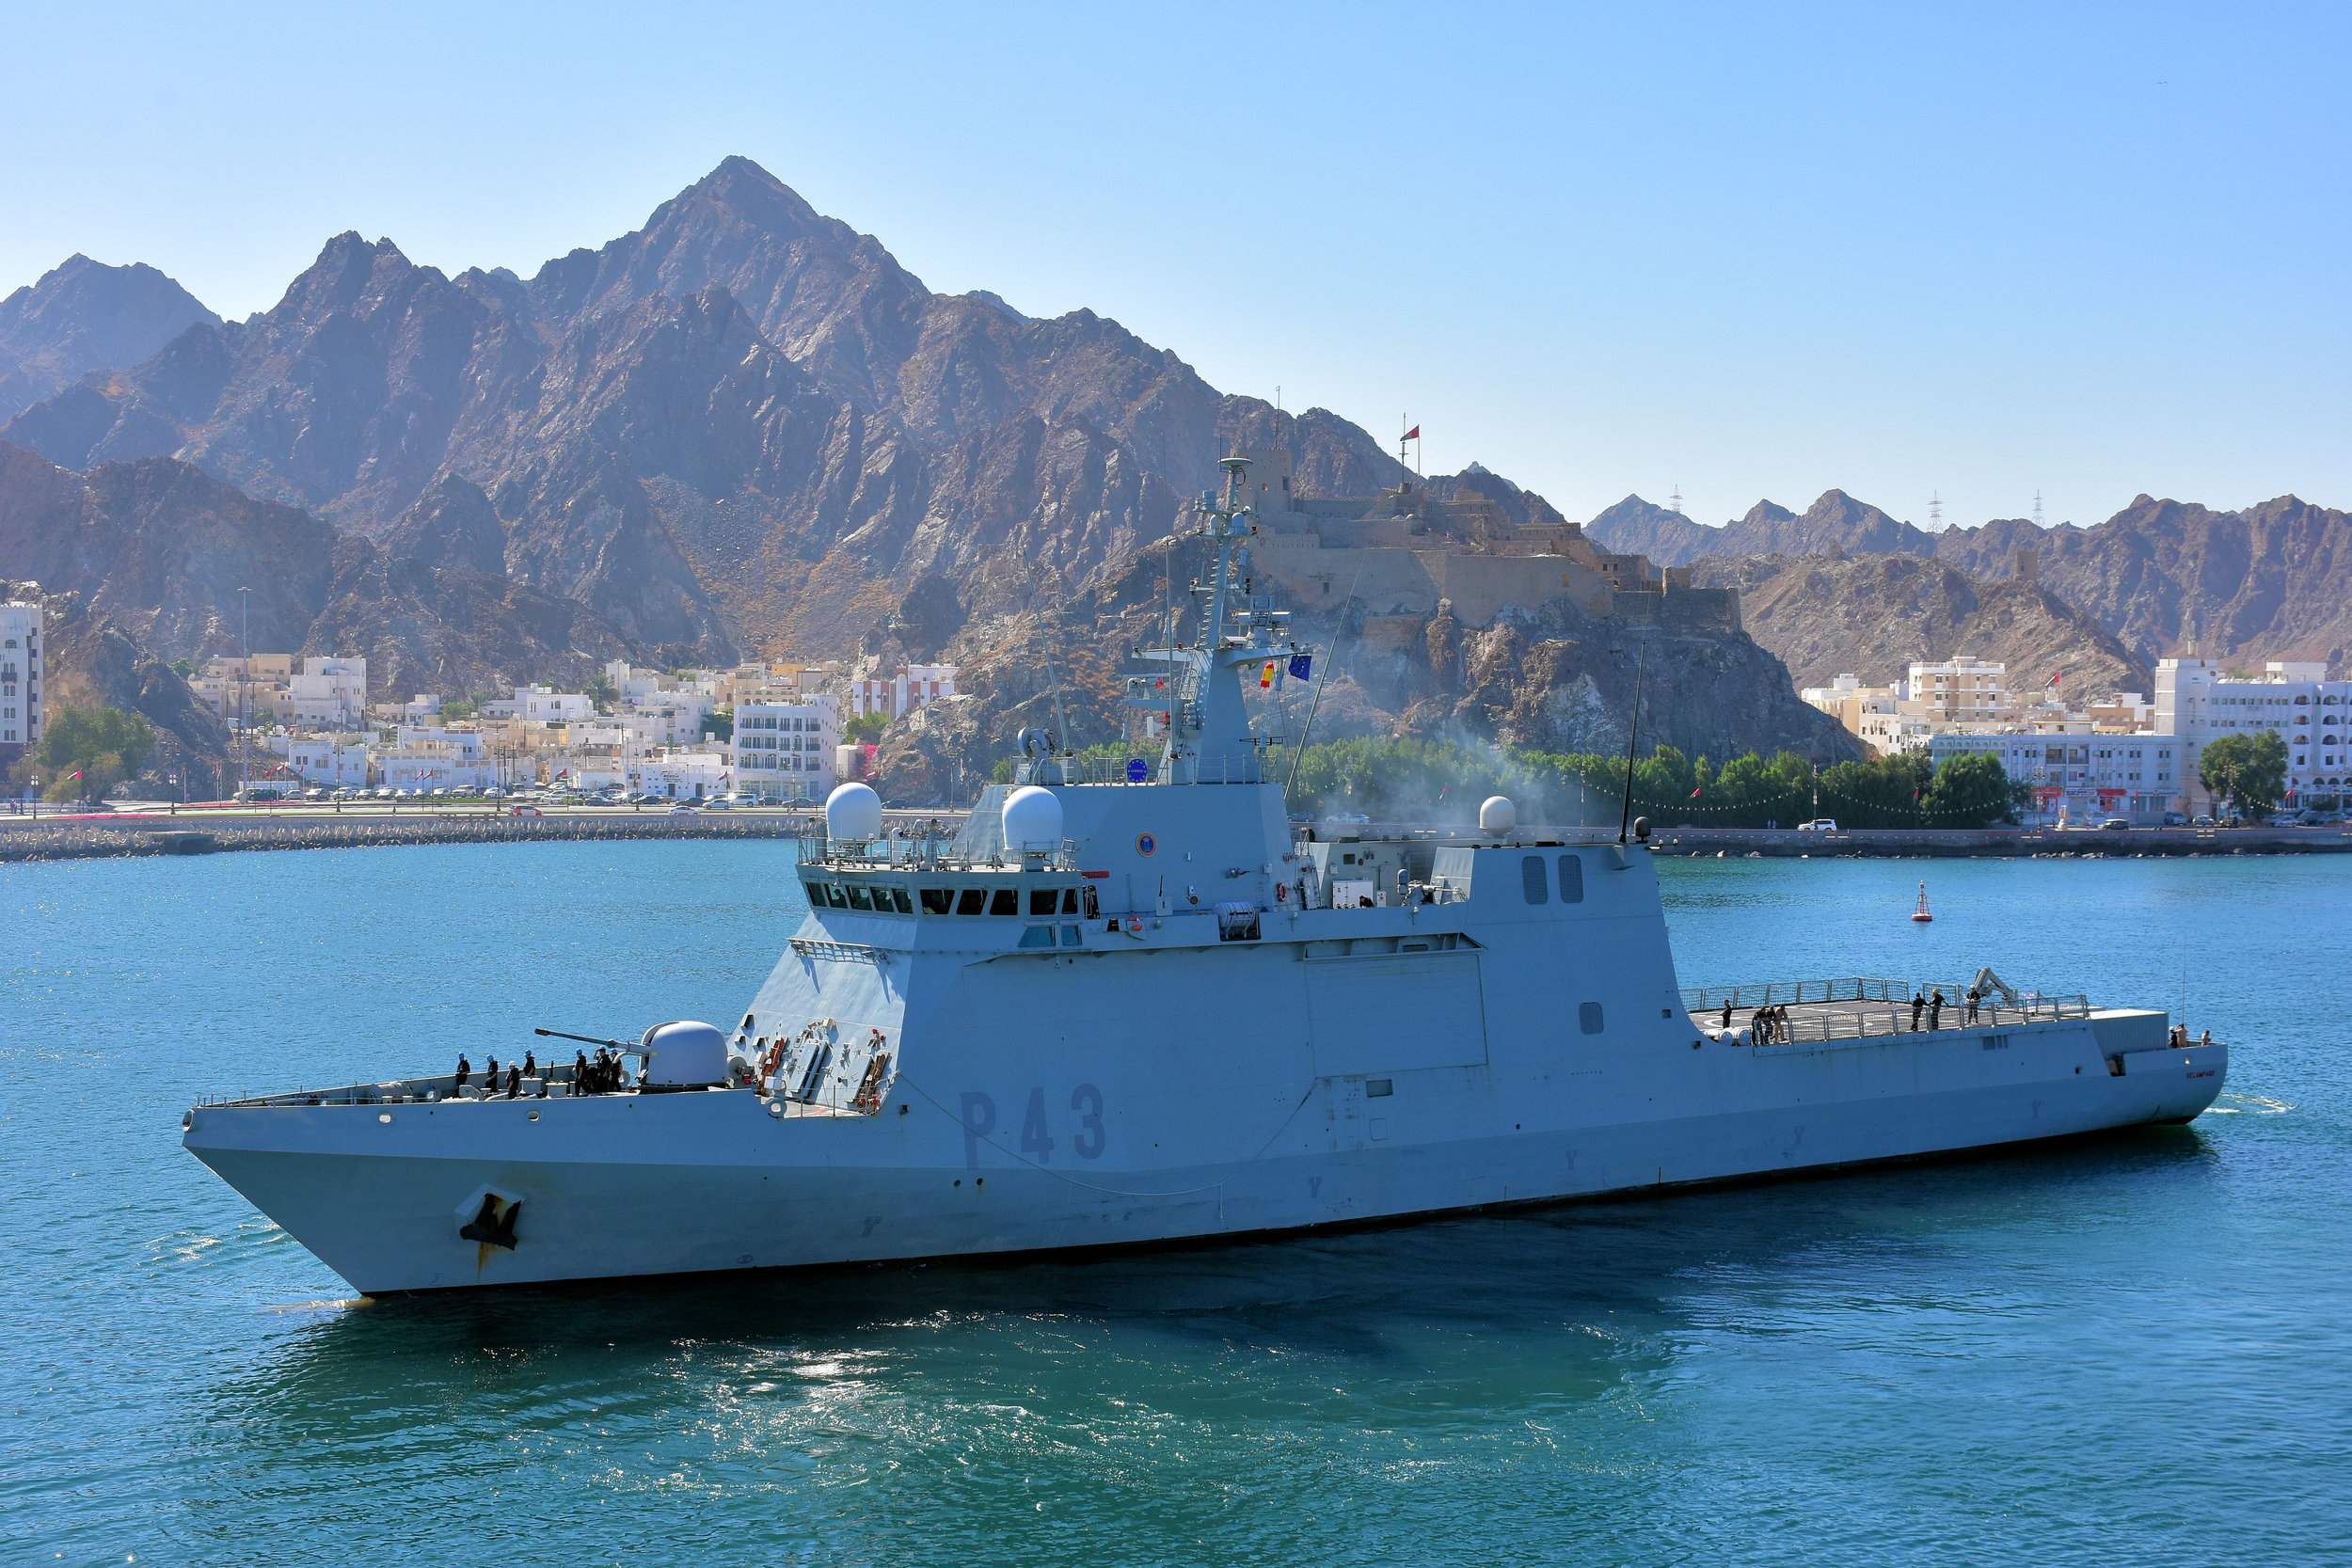 The ESPS Relampago, a Spanish war ship, leaves the port of Muscat, Oman unmarked. The vessel is part of an EU escort fleet. Its task is to patrol the pirate infested water in the Gulf of Aden and to escort humanitarian cargo ships safely to port.